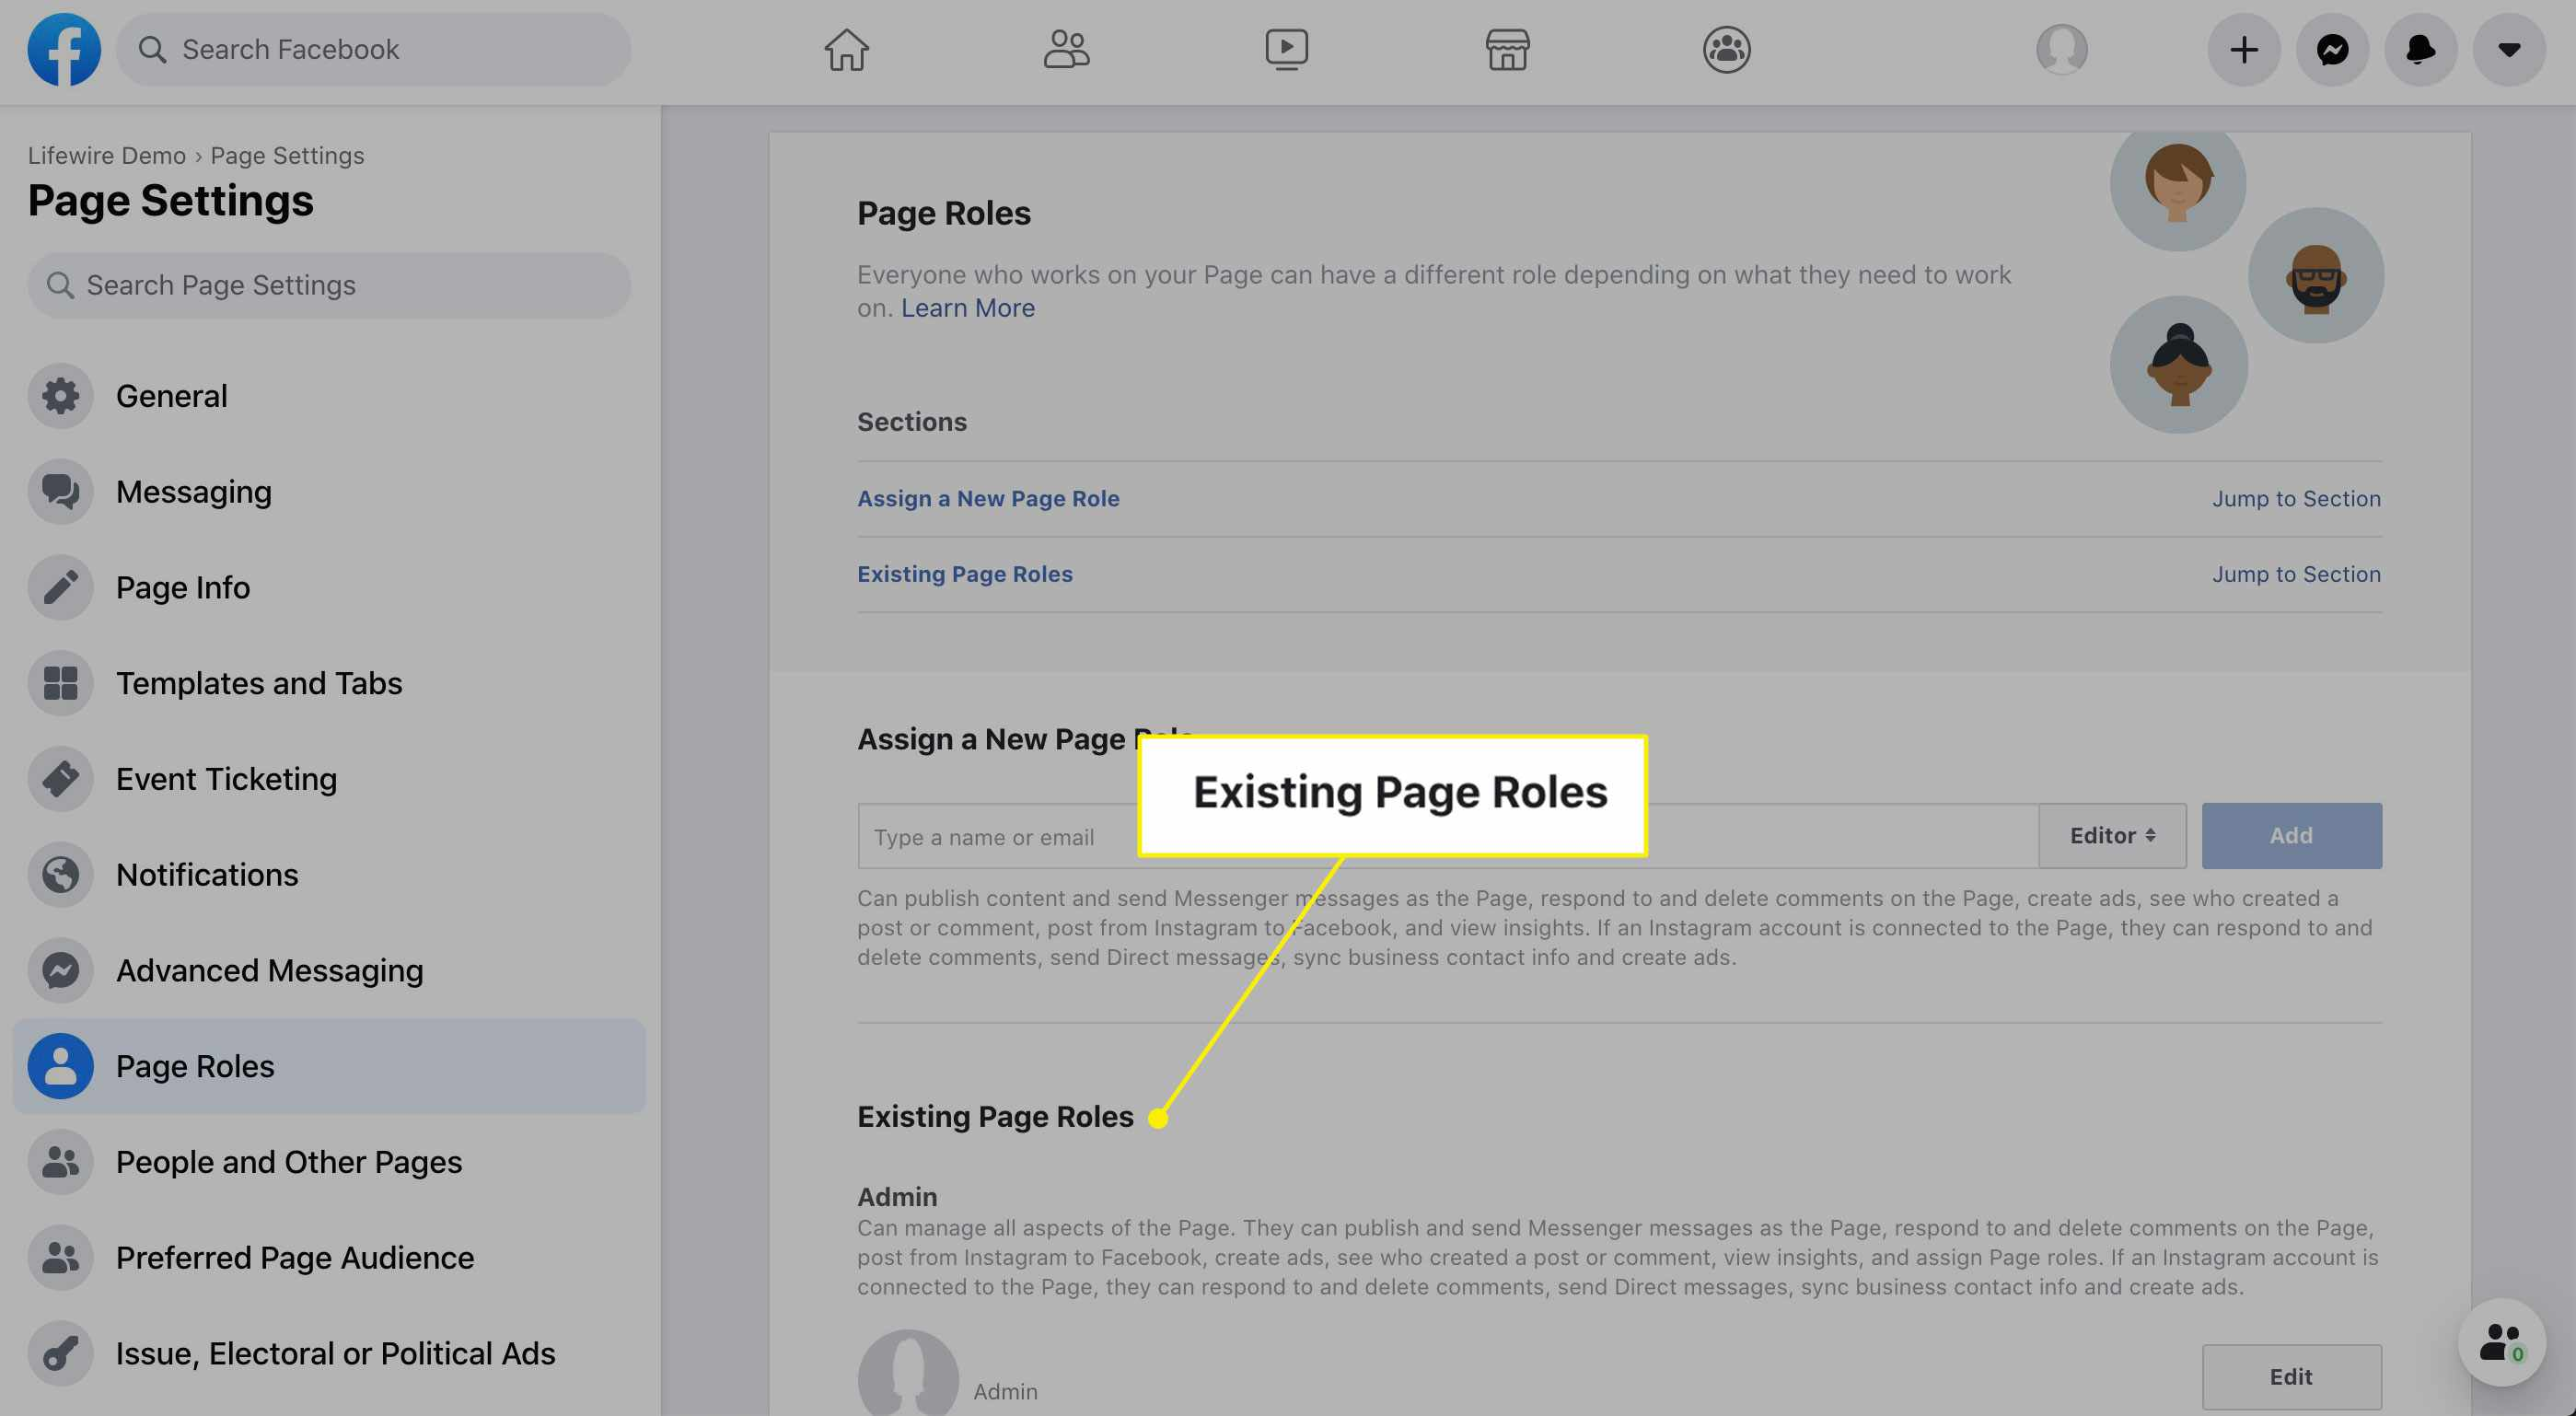 The Existing Page Roles section